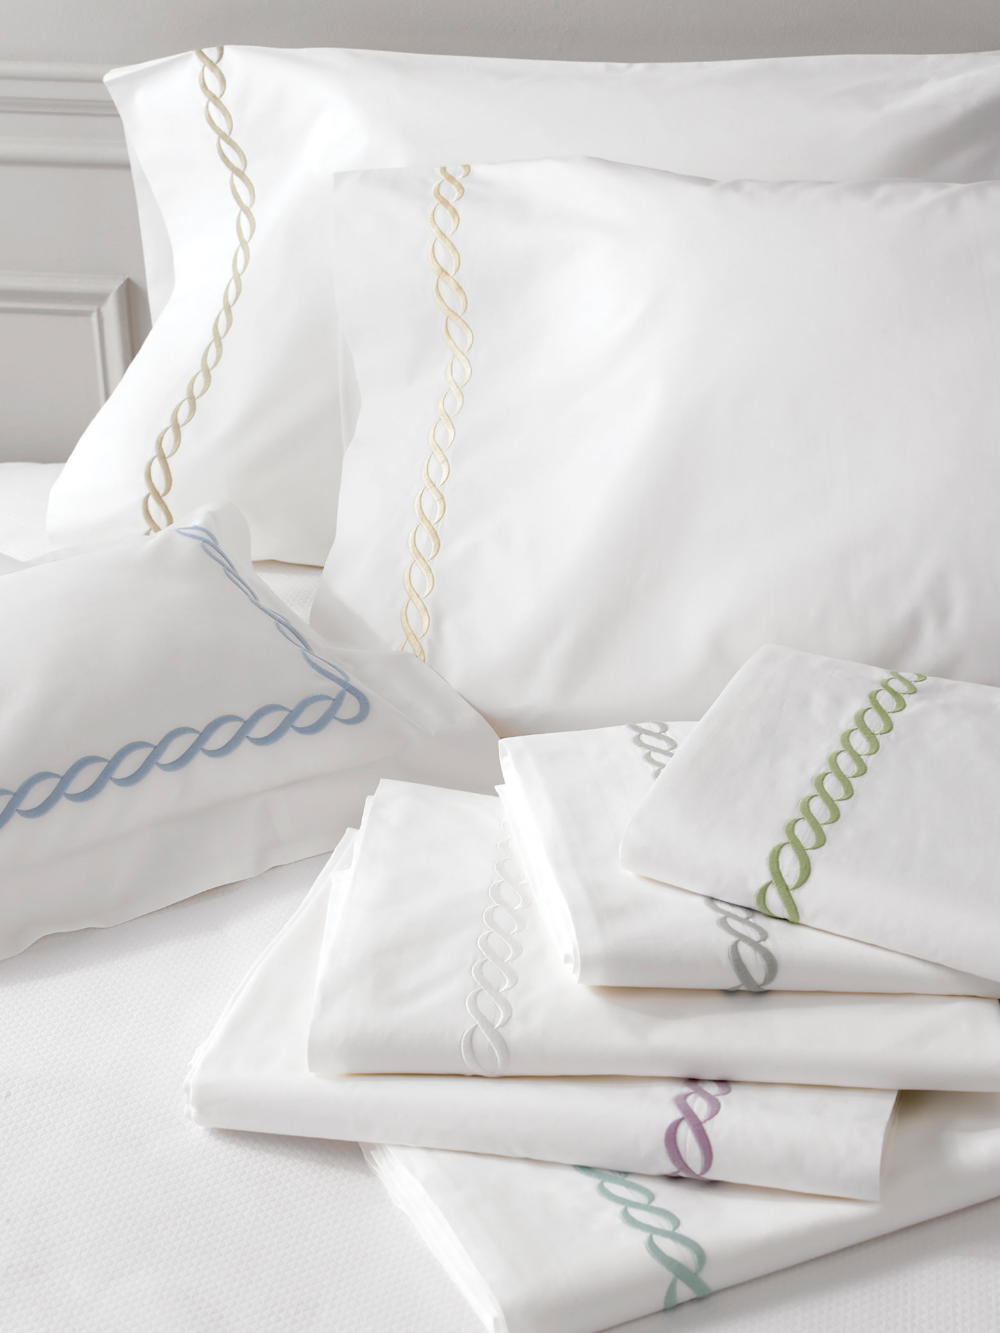 Classic Chain Duvet Cover Matouk Luxury Linens (With